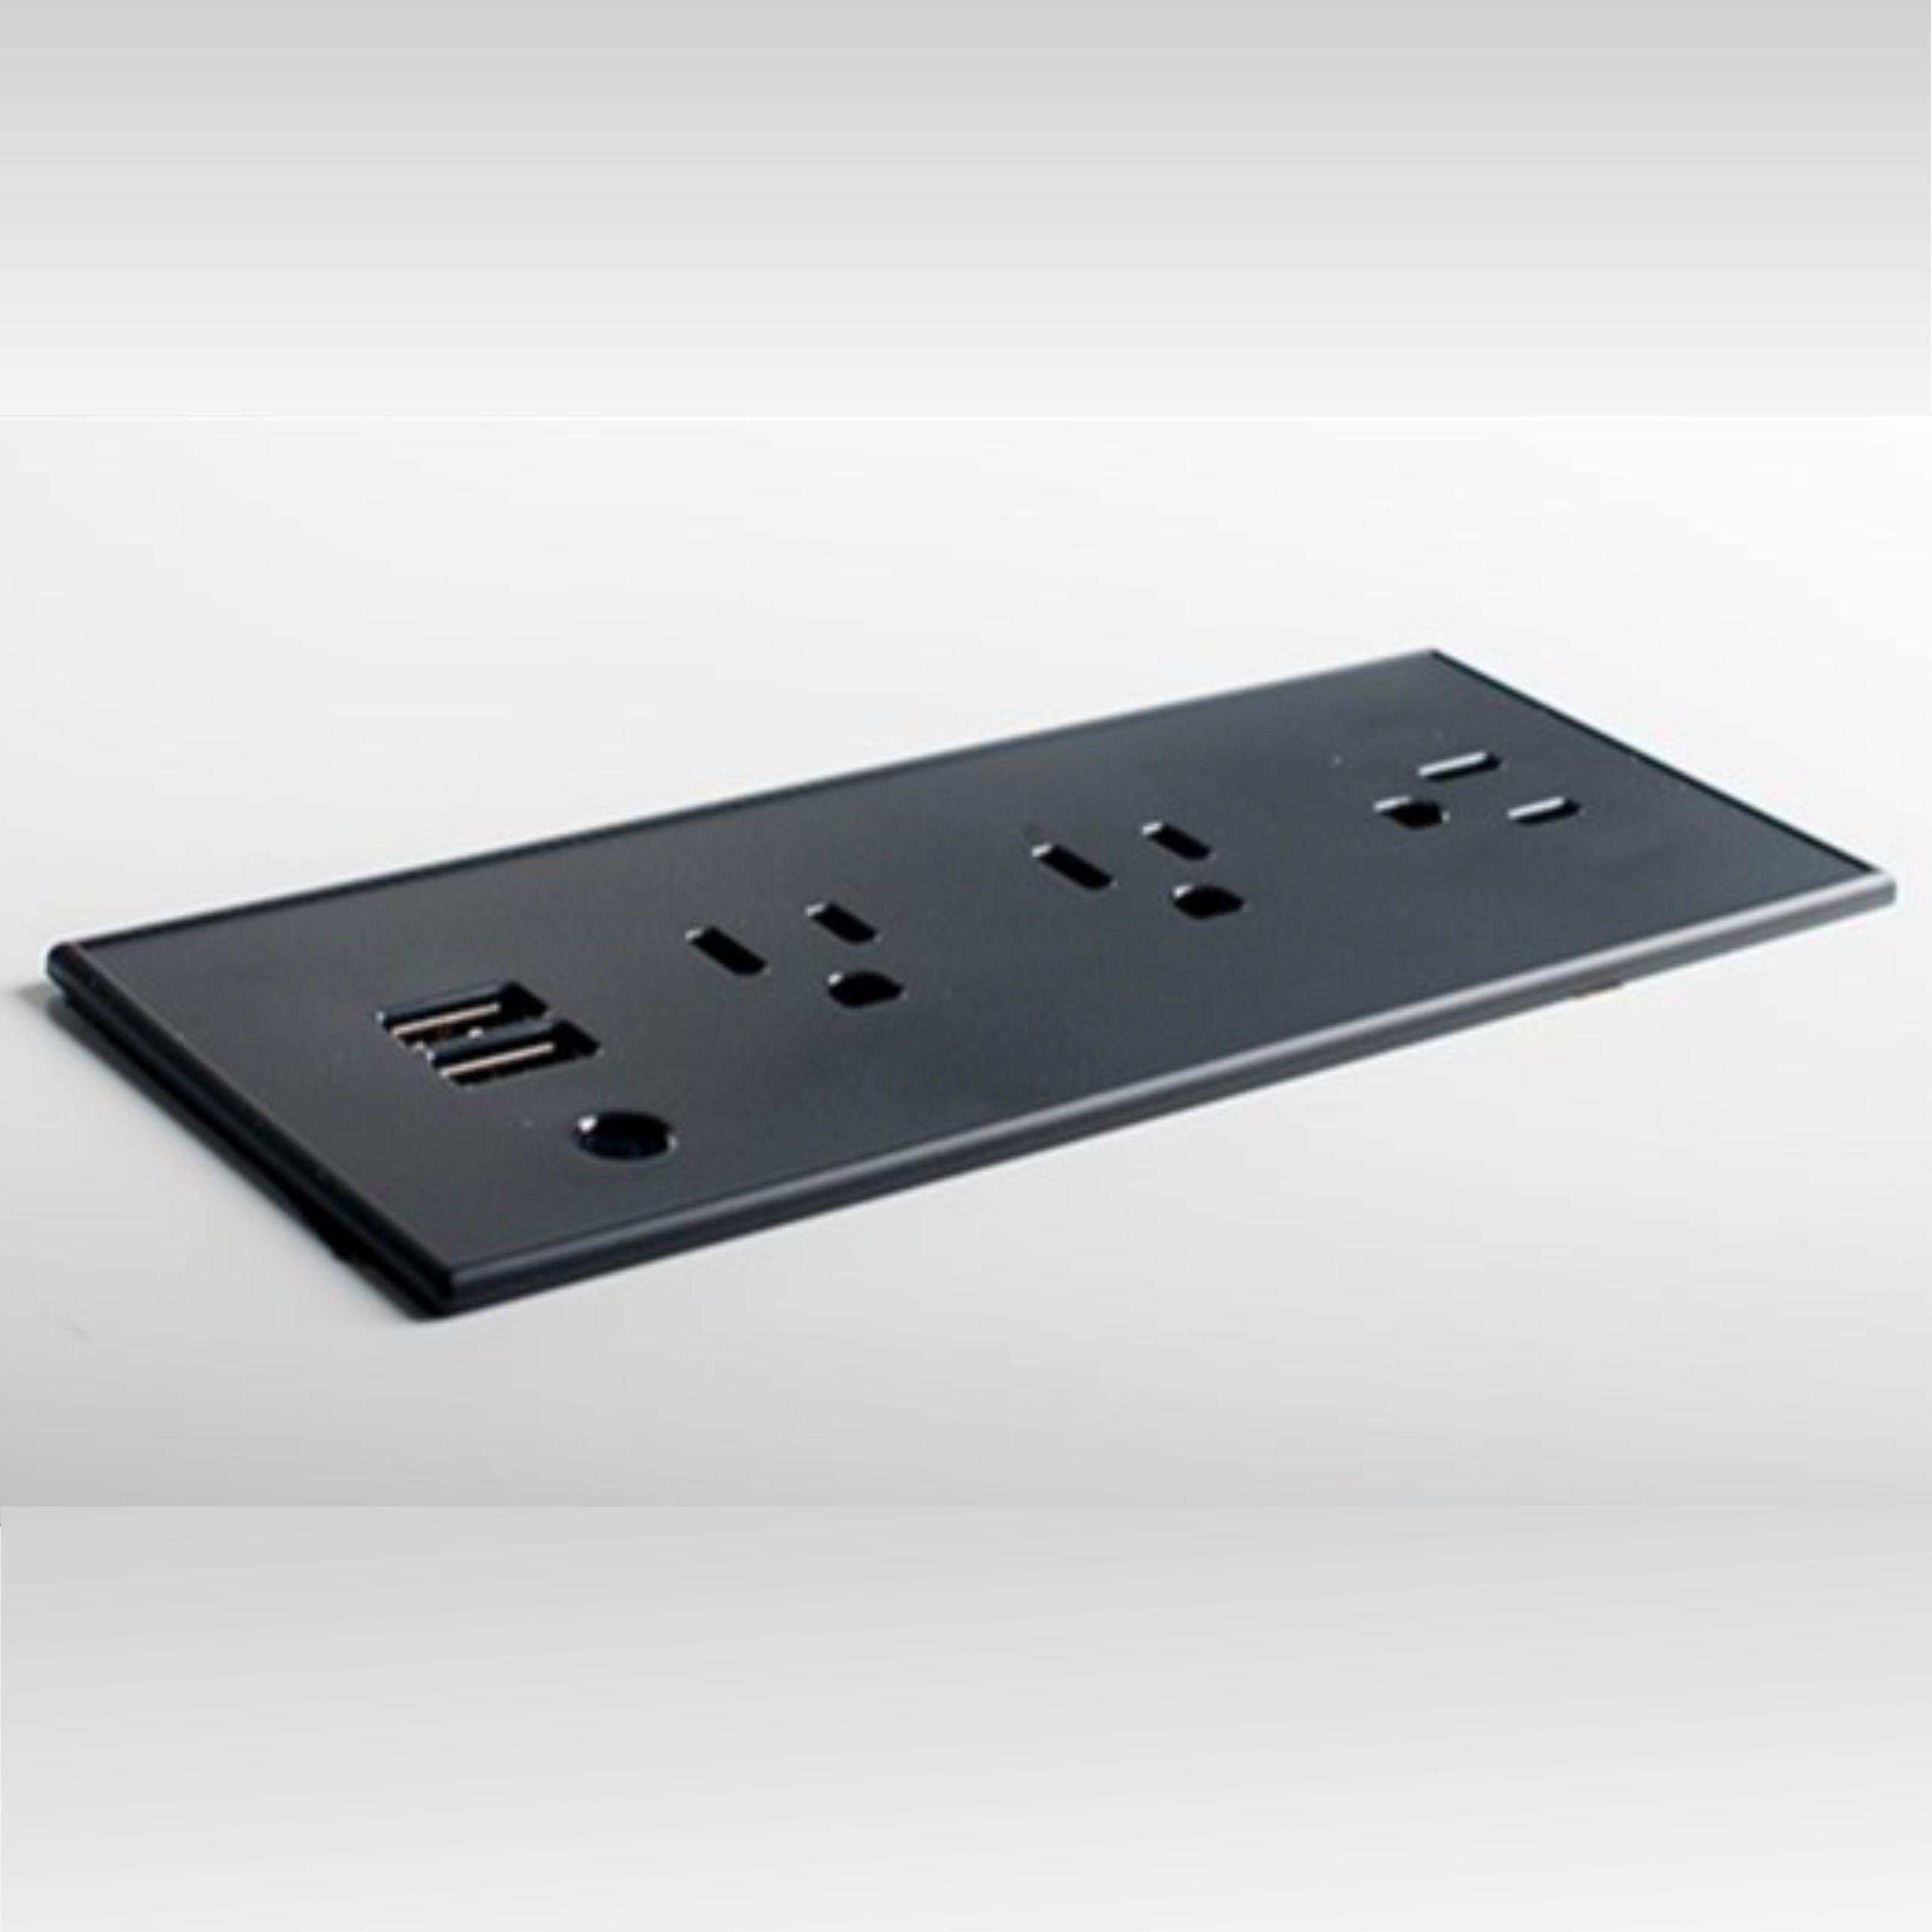 Flush Mount Power Strip With Outlets And Usb Ports Power Strip